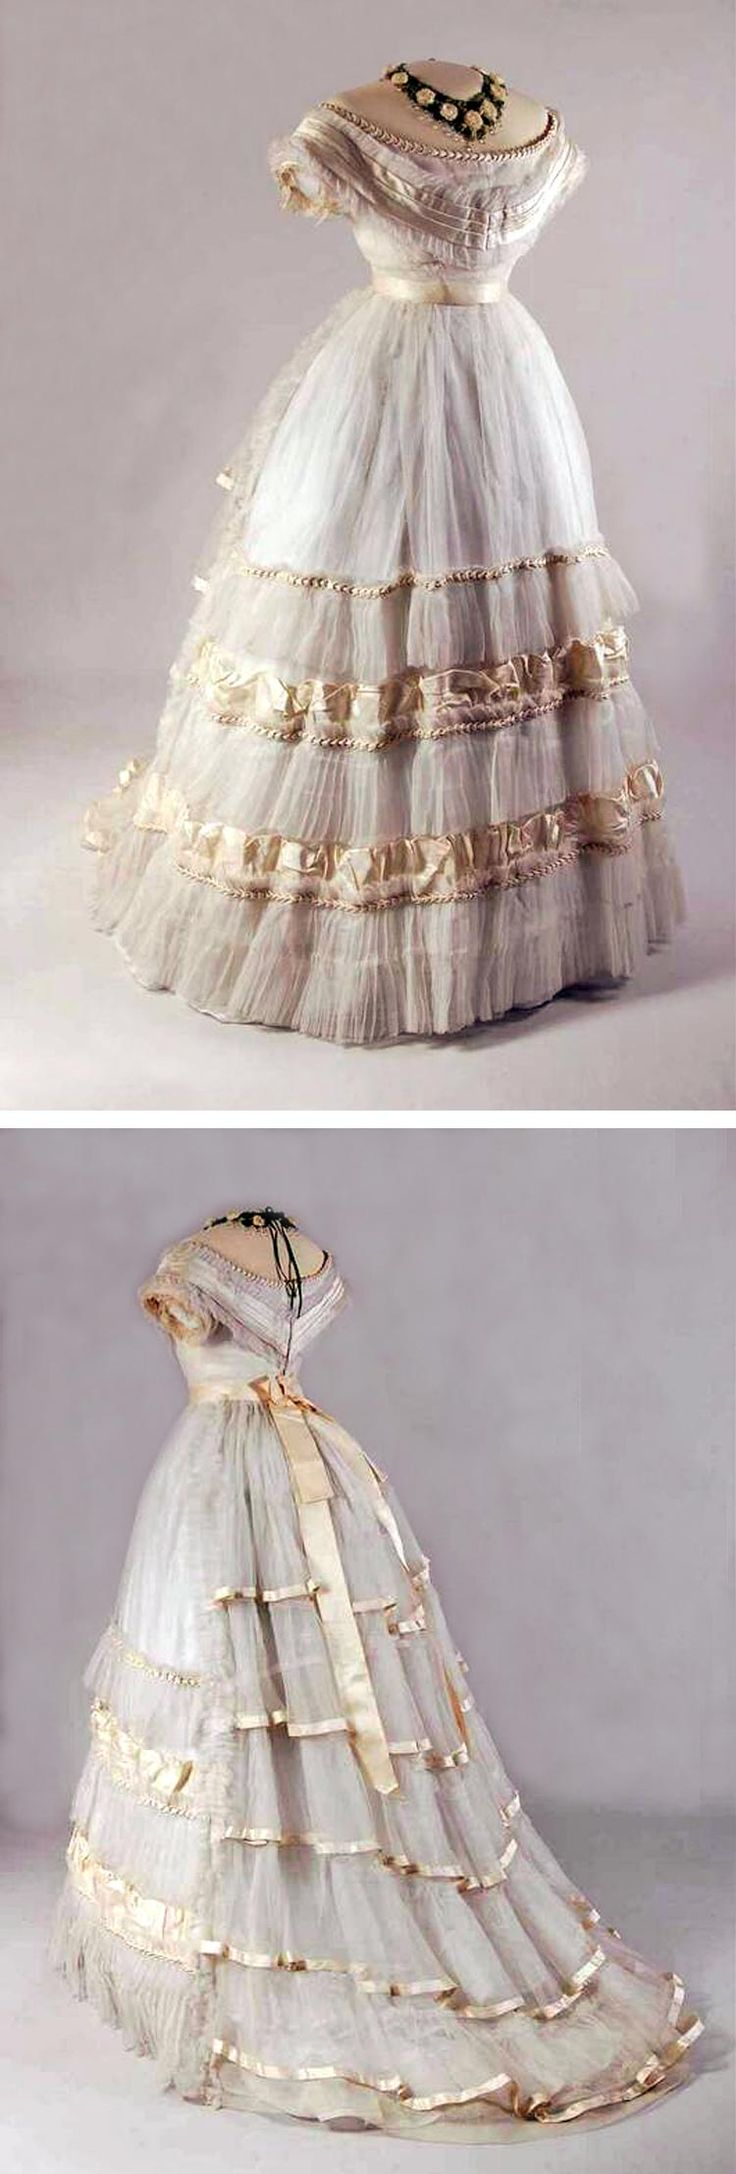 642 best Historic Fashions 1800-1919 images on Pinterest ...